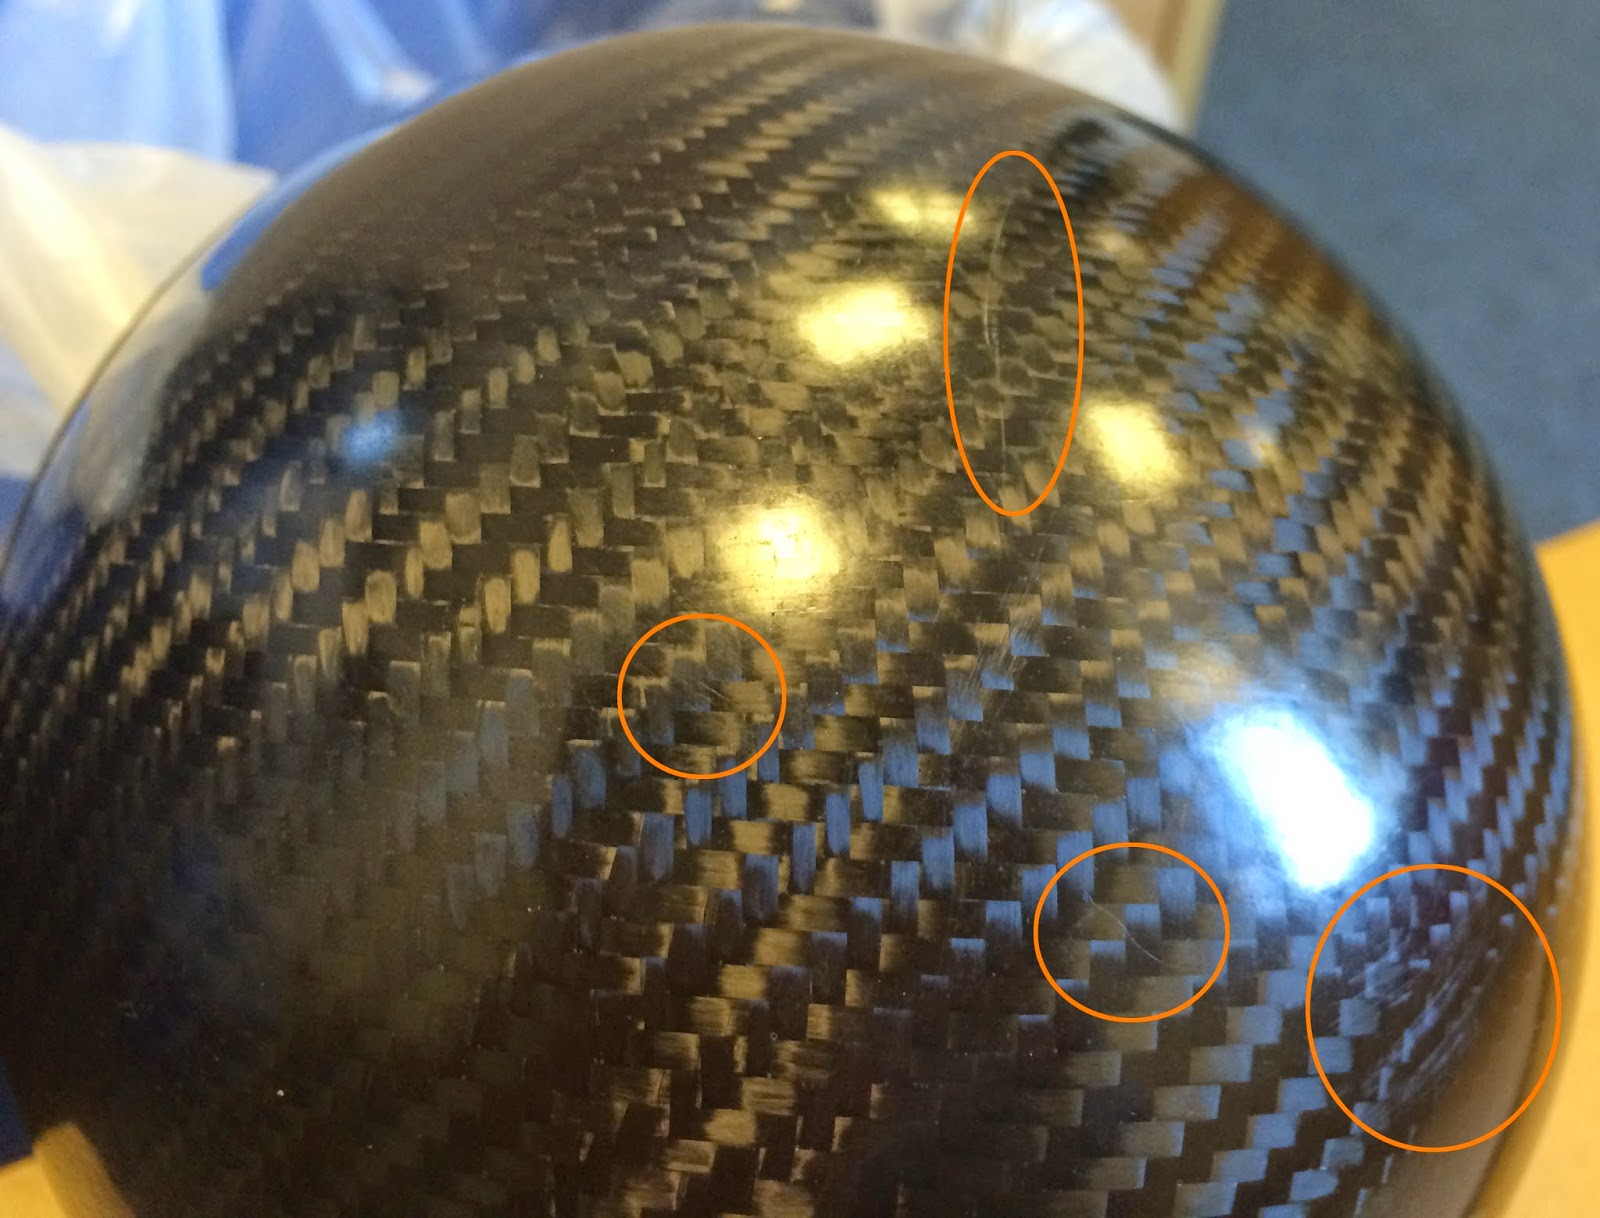 Caterham Carbon Headlight Bowls with highlighted scratches